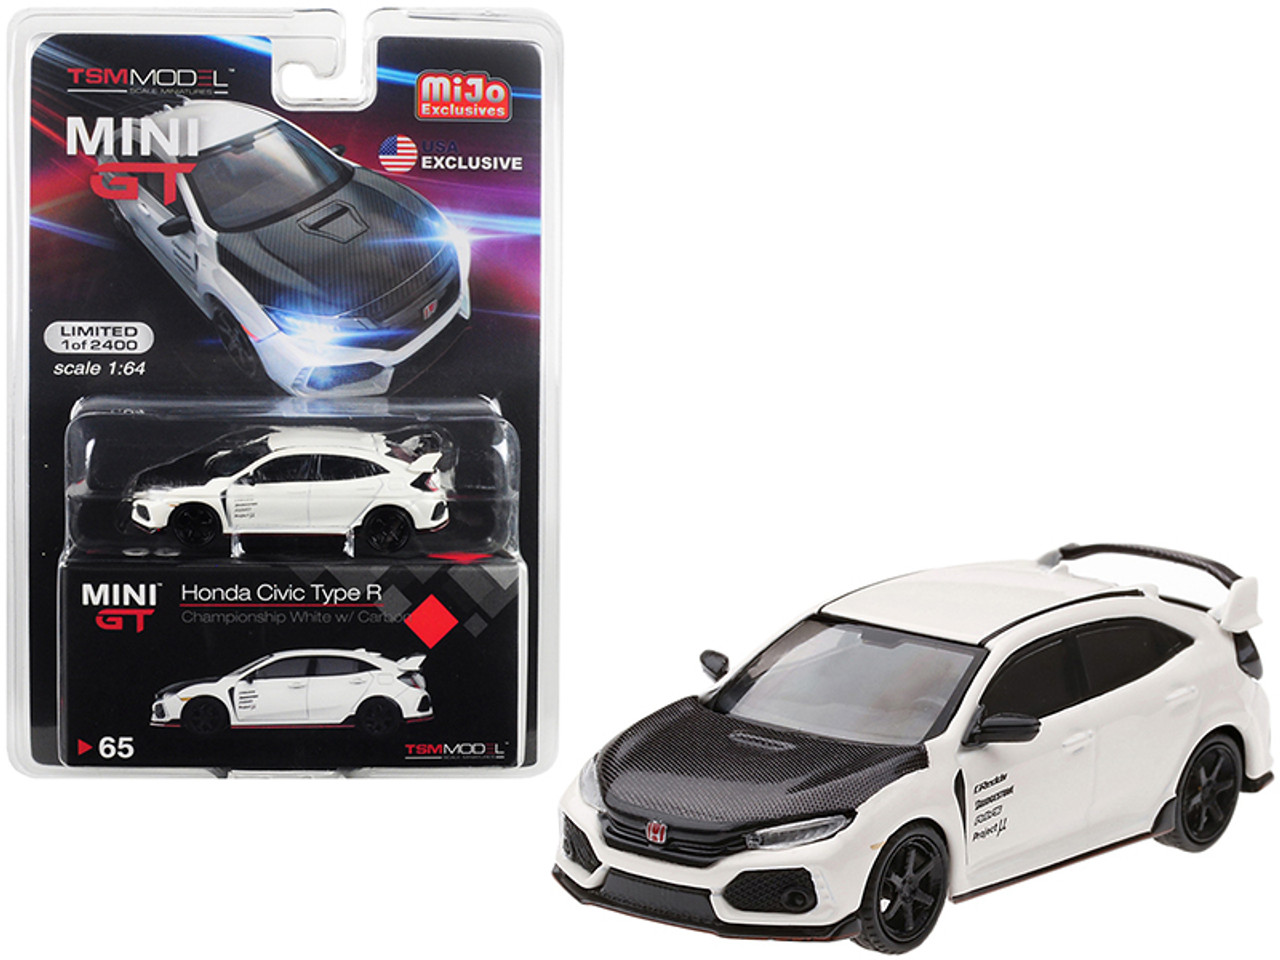 1/64 True Scale Miniatures Honda Civic Type R (FK8) Championship White with Carbon Hood and TE37 Wheels Limited Edition to 2,400 pieces Worldwide Diecast Car Model